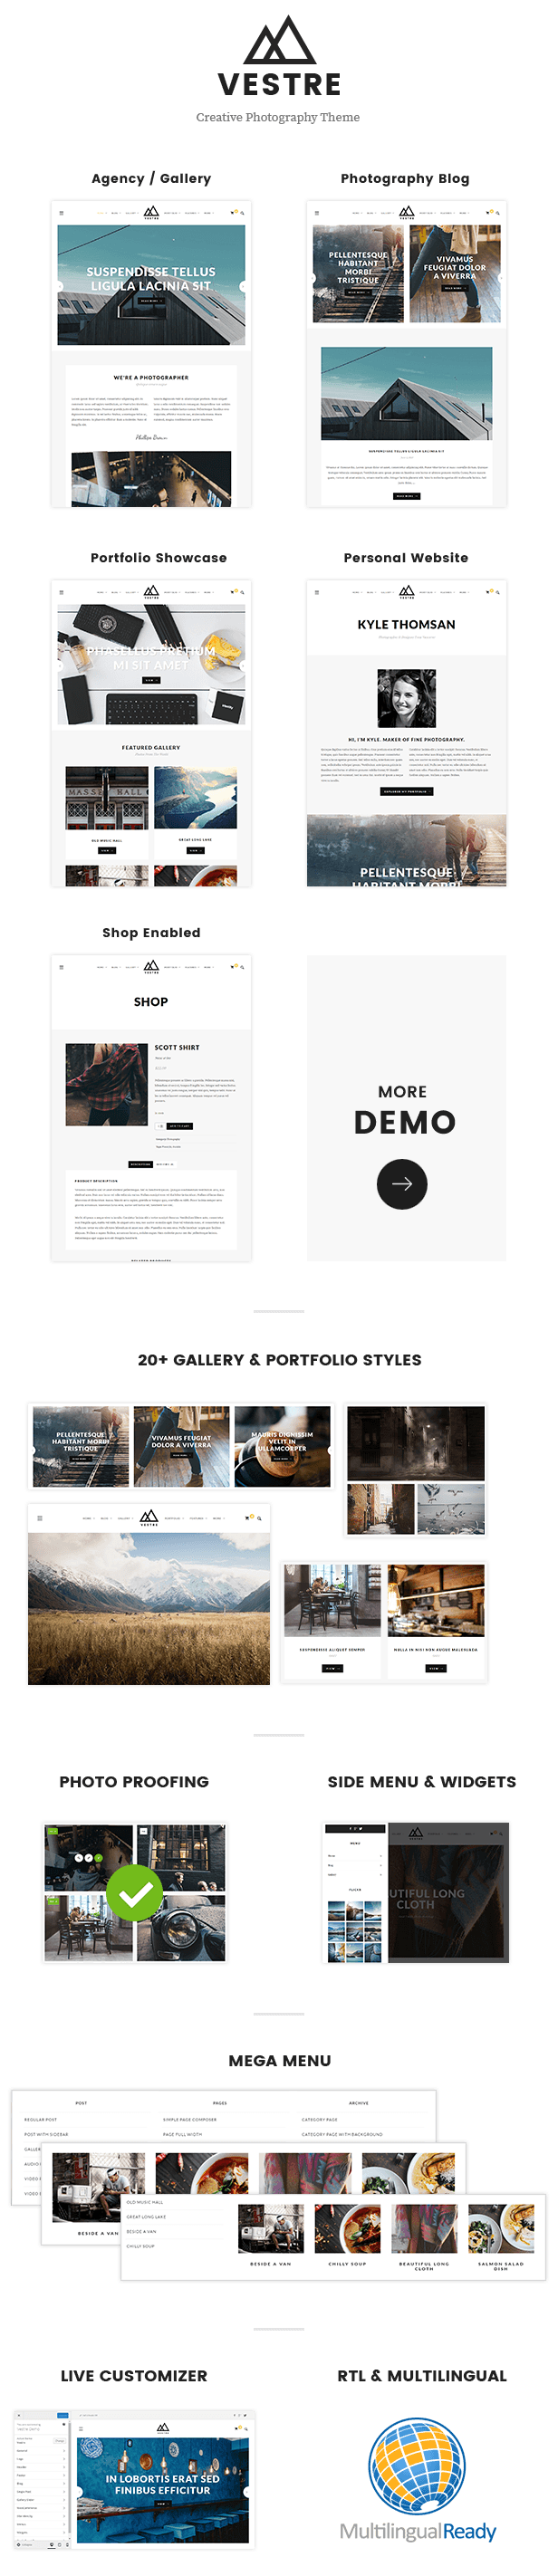 Vestre - Creative Photography & Portfolio WordPress Theme